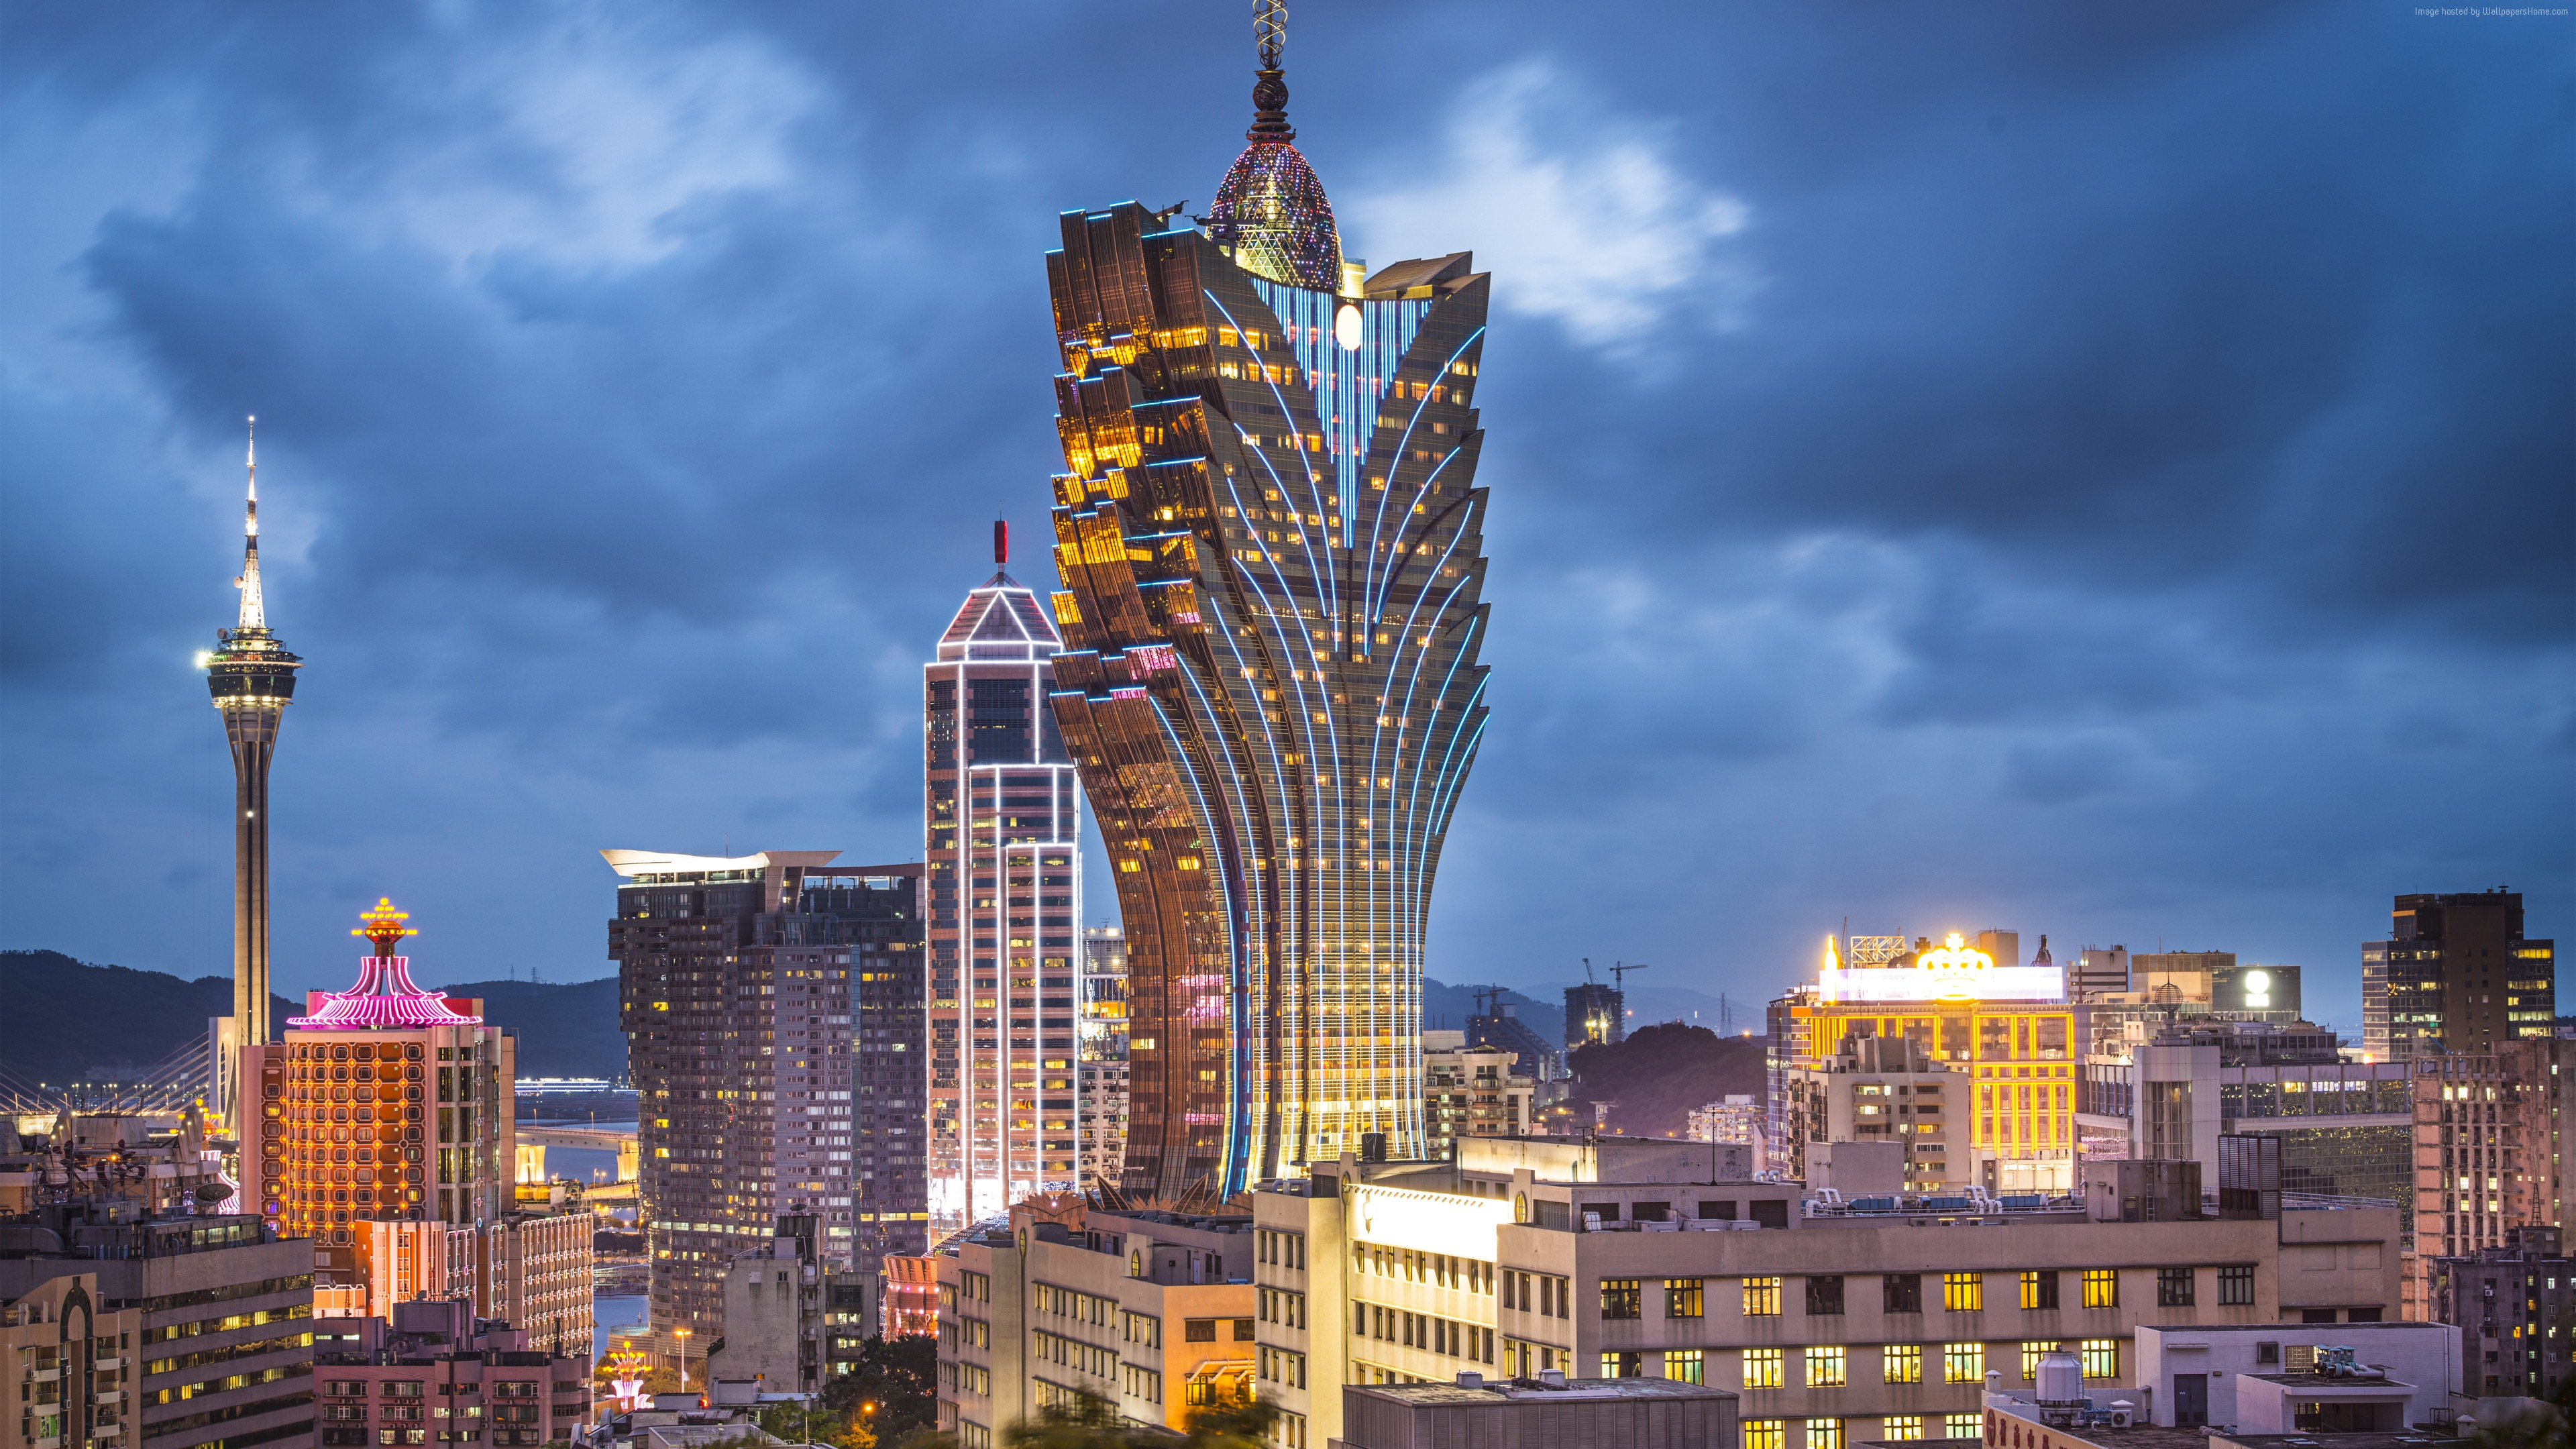 Wallpaper Grand Lisboa, Makao, China, Best hotels, tourism, travel, resort, booking, vacation, Architecture